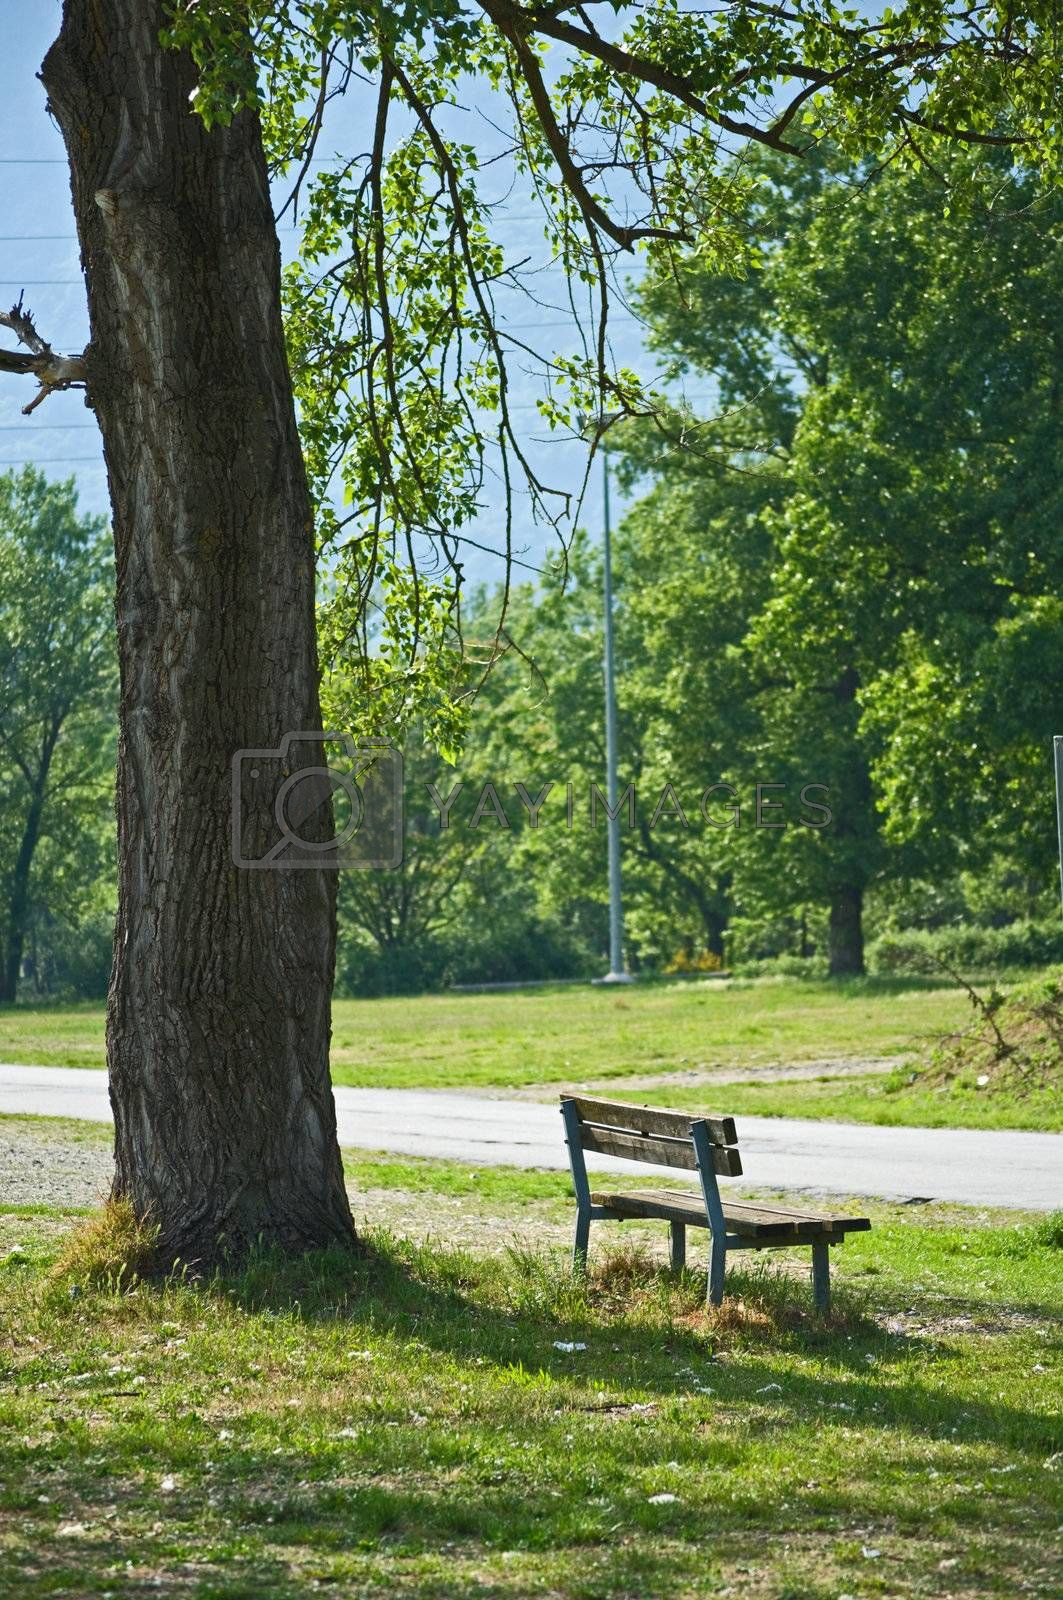 Lonely bench underneath tree in public park